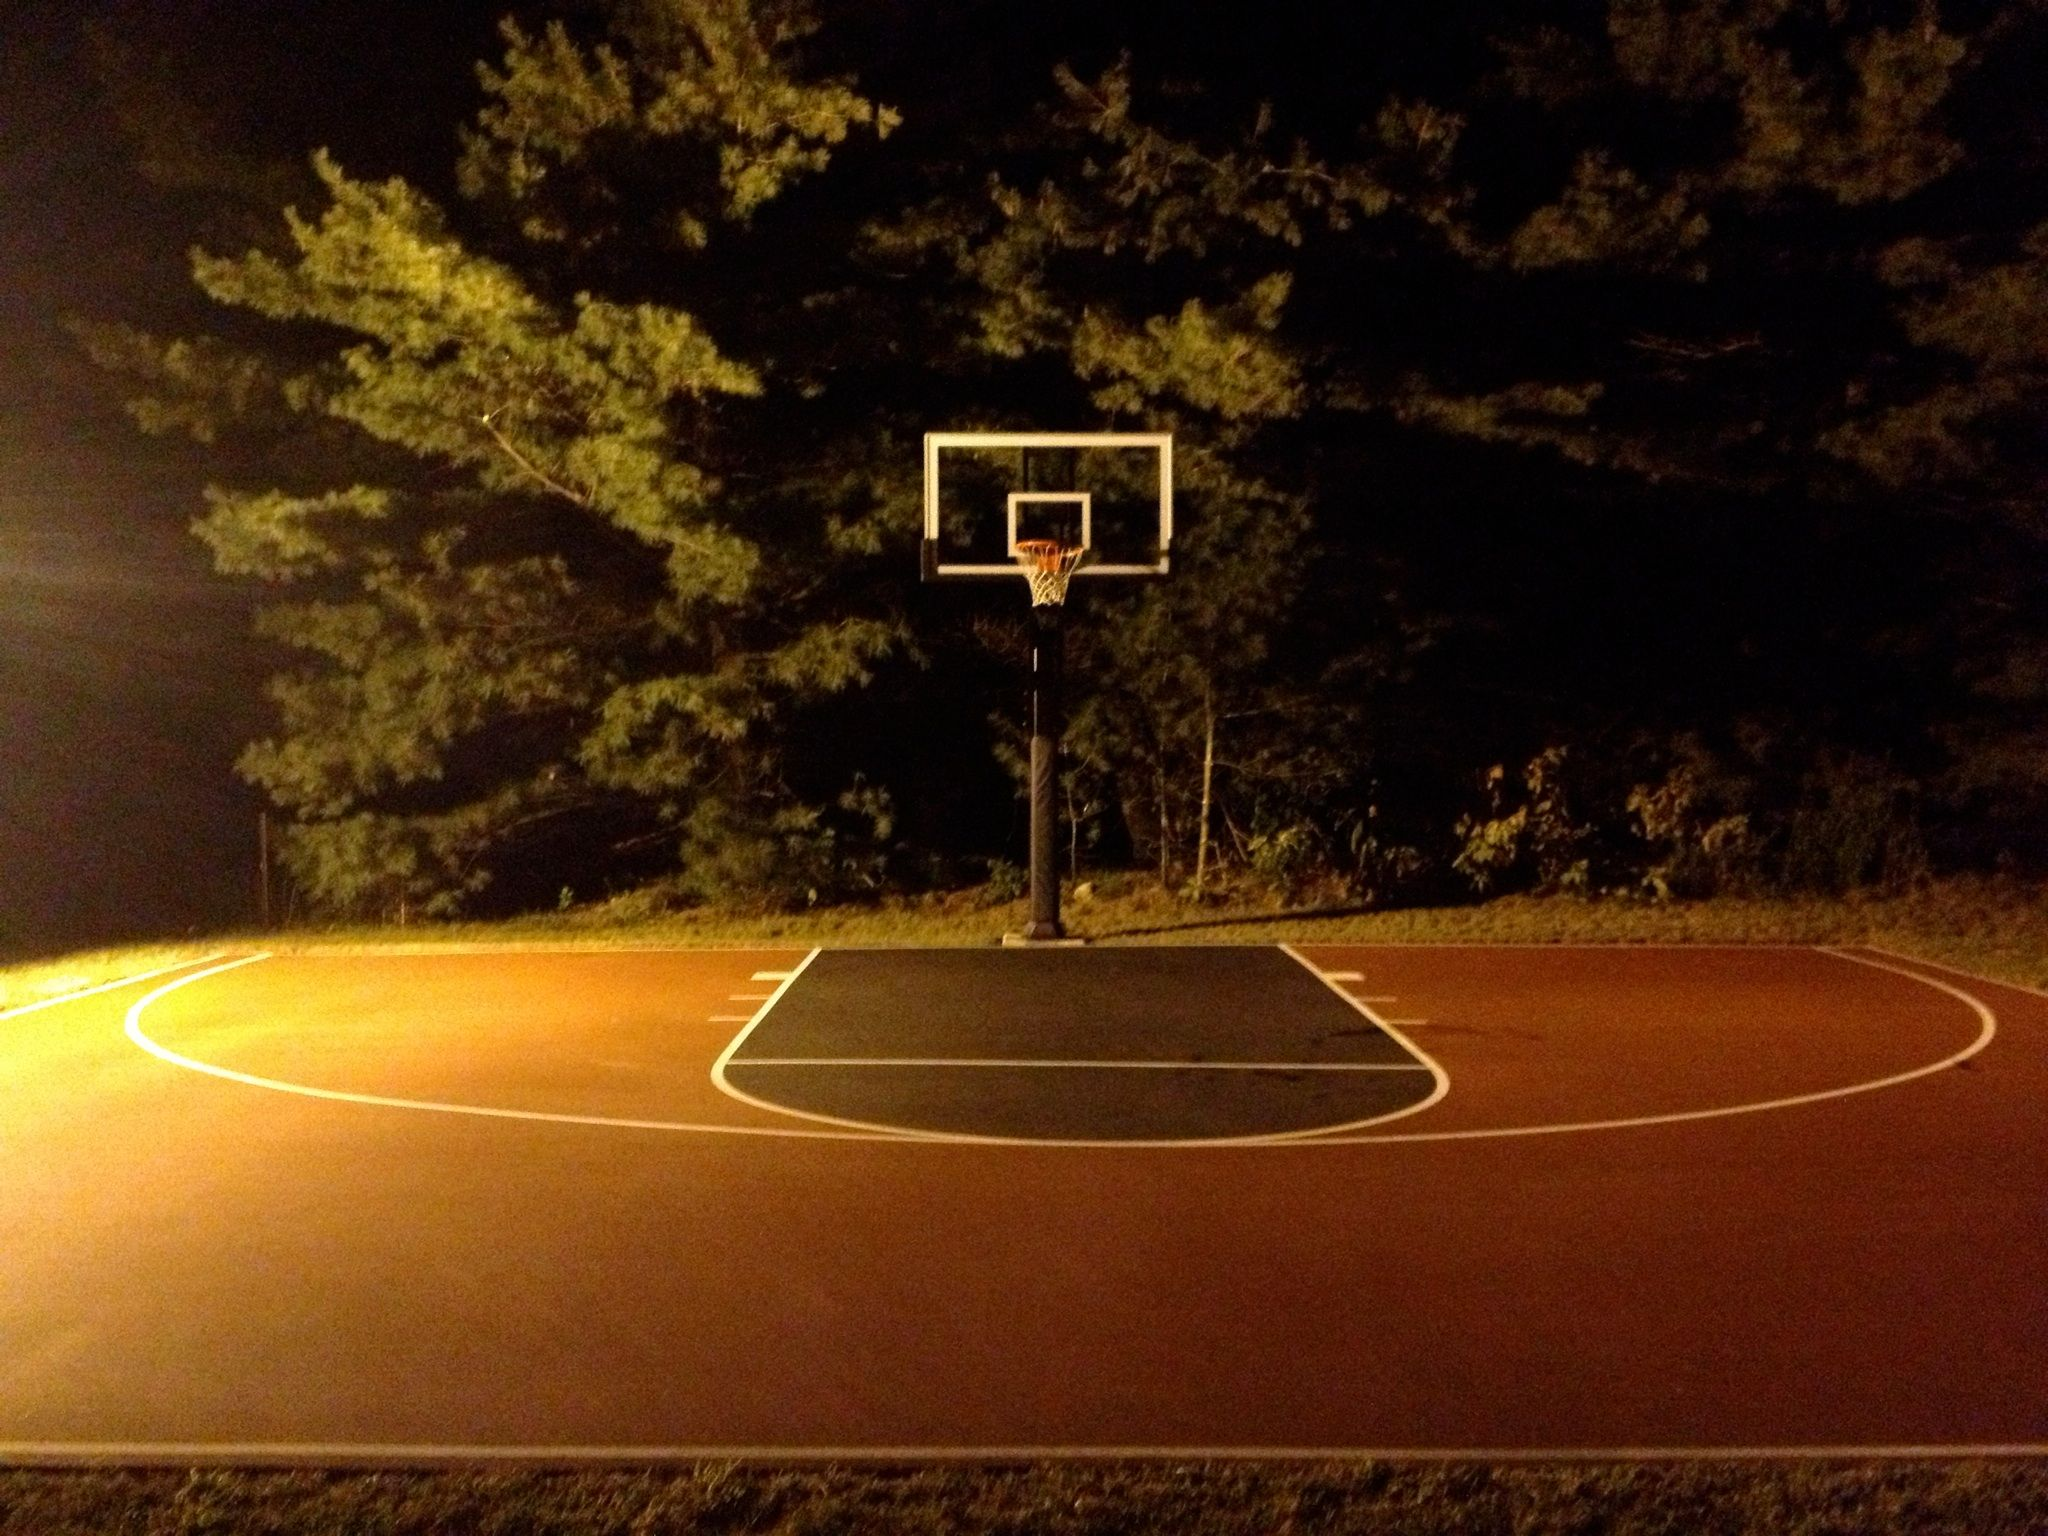 Pin By Pro Dunk Hoops On Pro Dunk Hoops Basketball Goals Basketball Court Basketball Wallpaper Basketball Wallpapers Hd